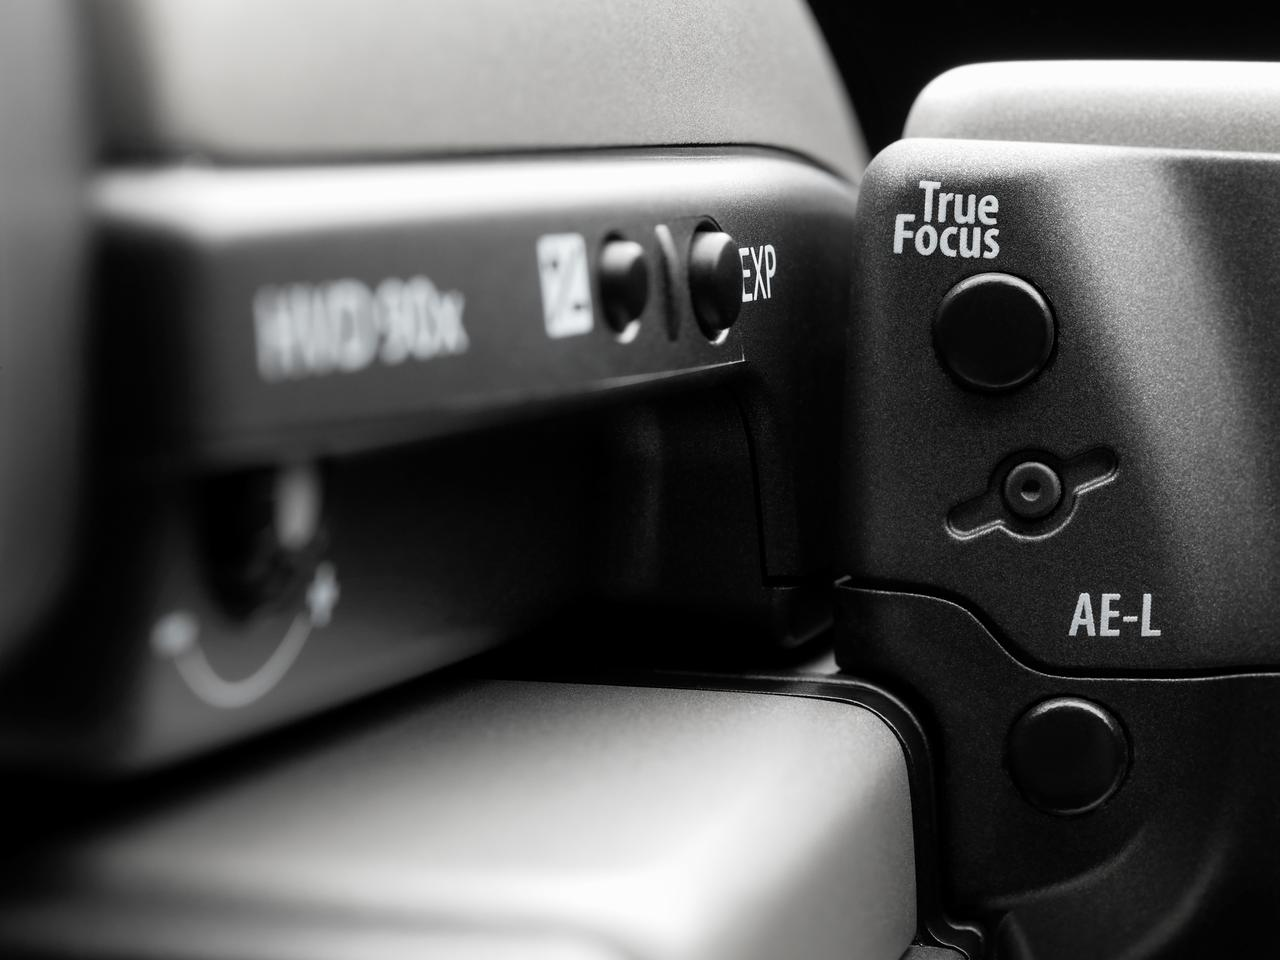 Close up showing the system's True Focus activation button